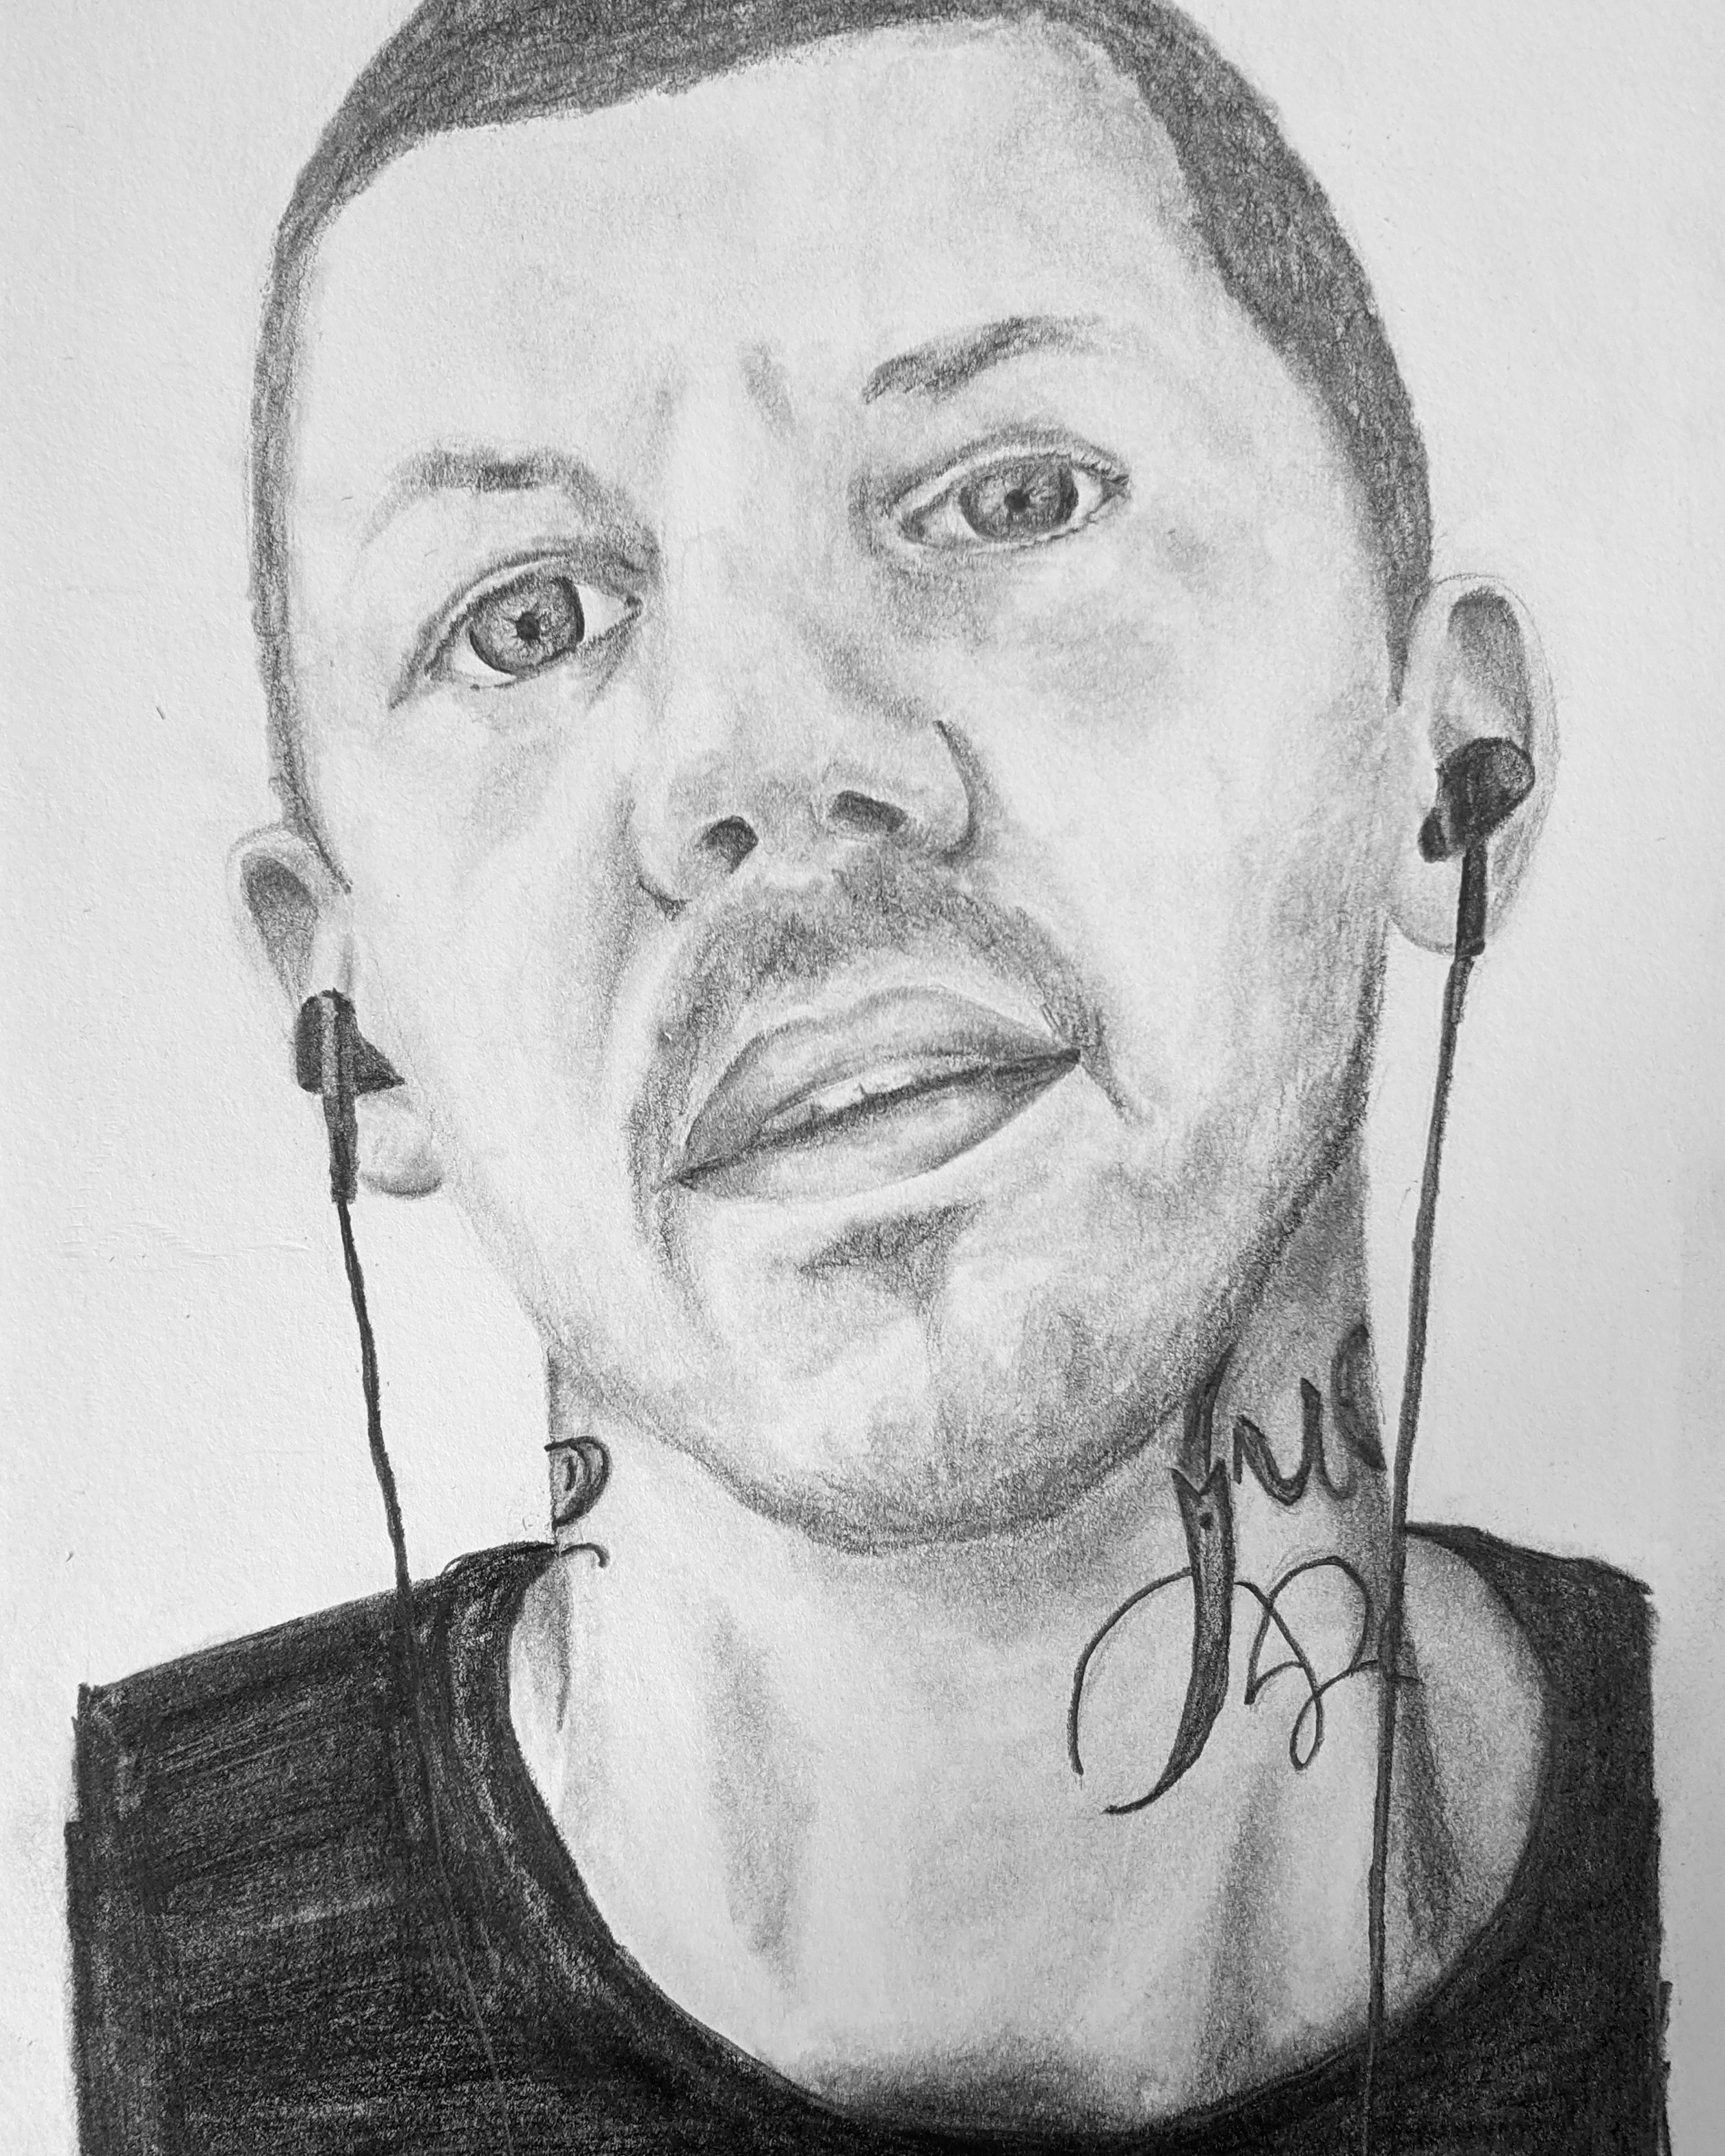 PENCIL - PROF GREEN